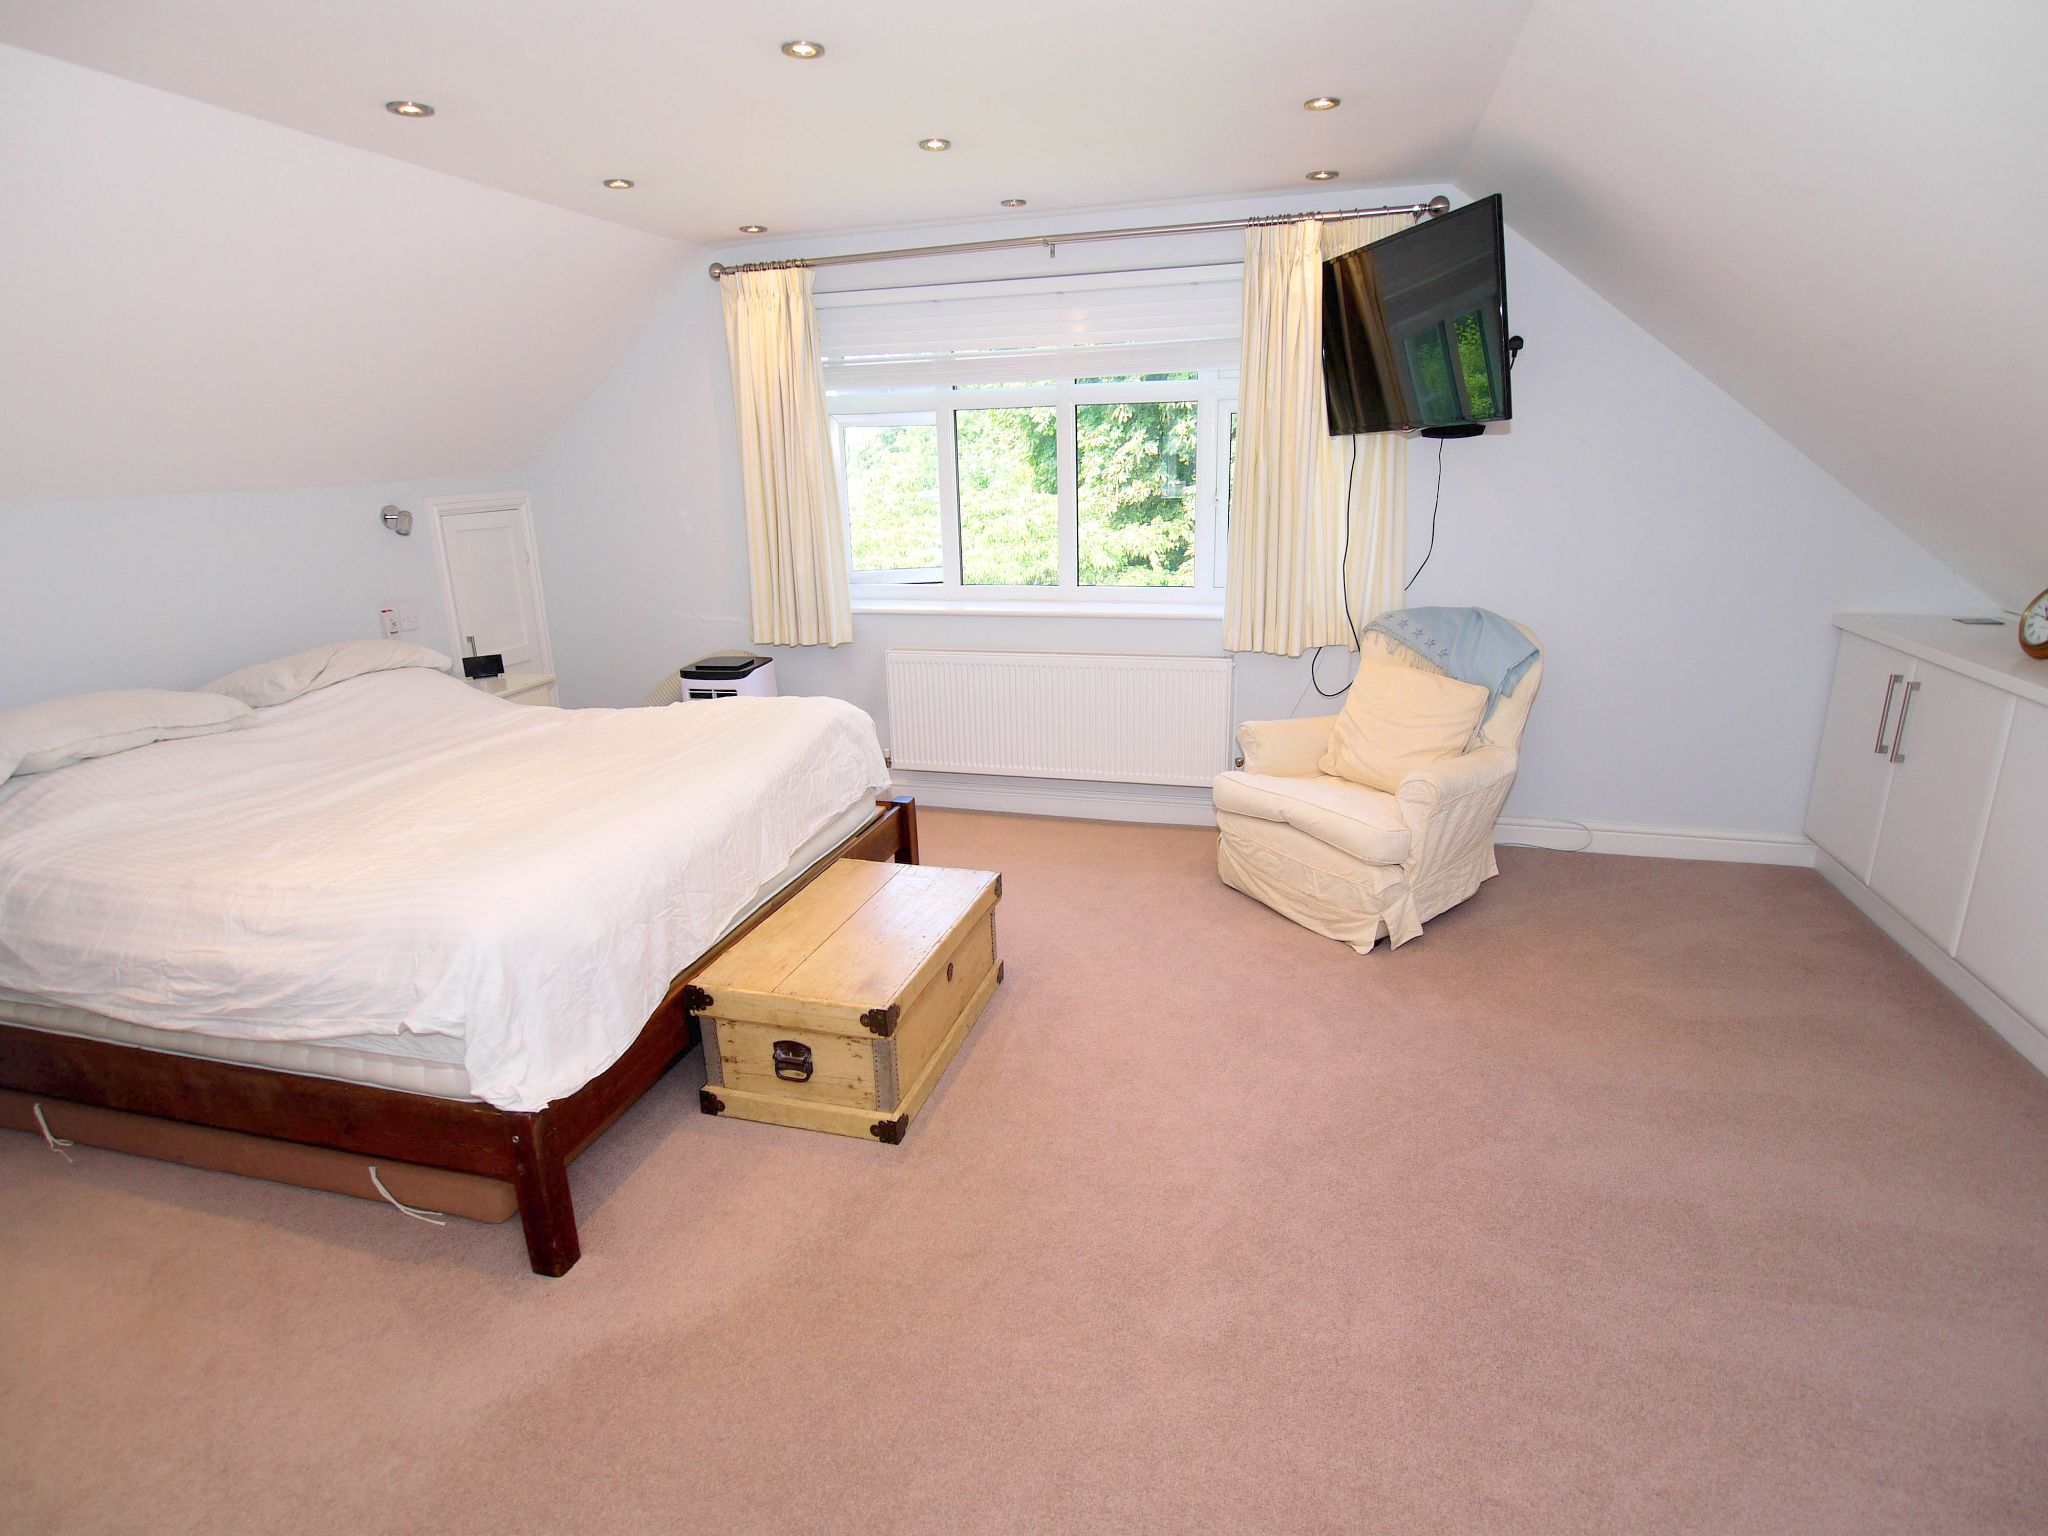 5 bedroom detached house For Sale in Sevenoaks - Photograph 6